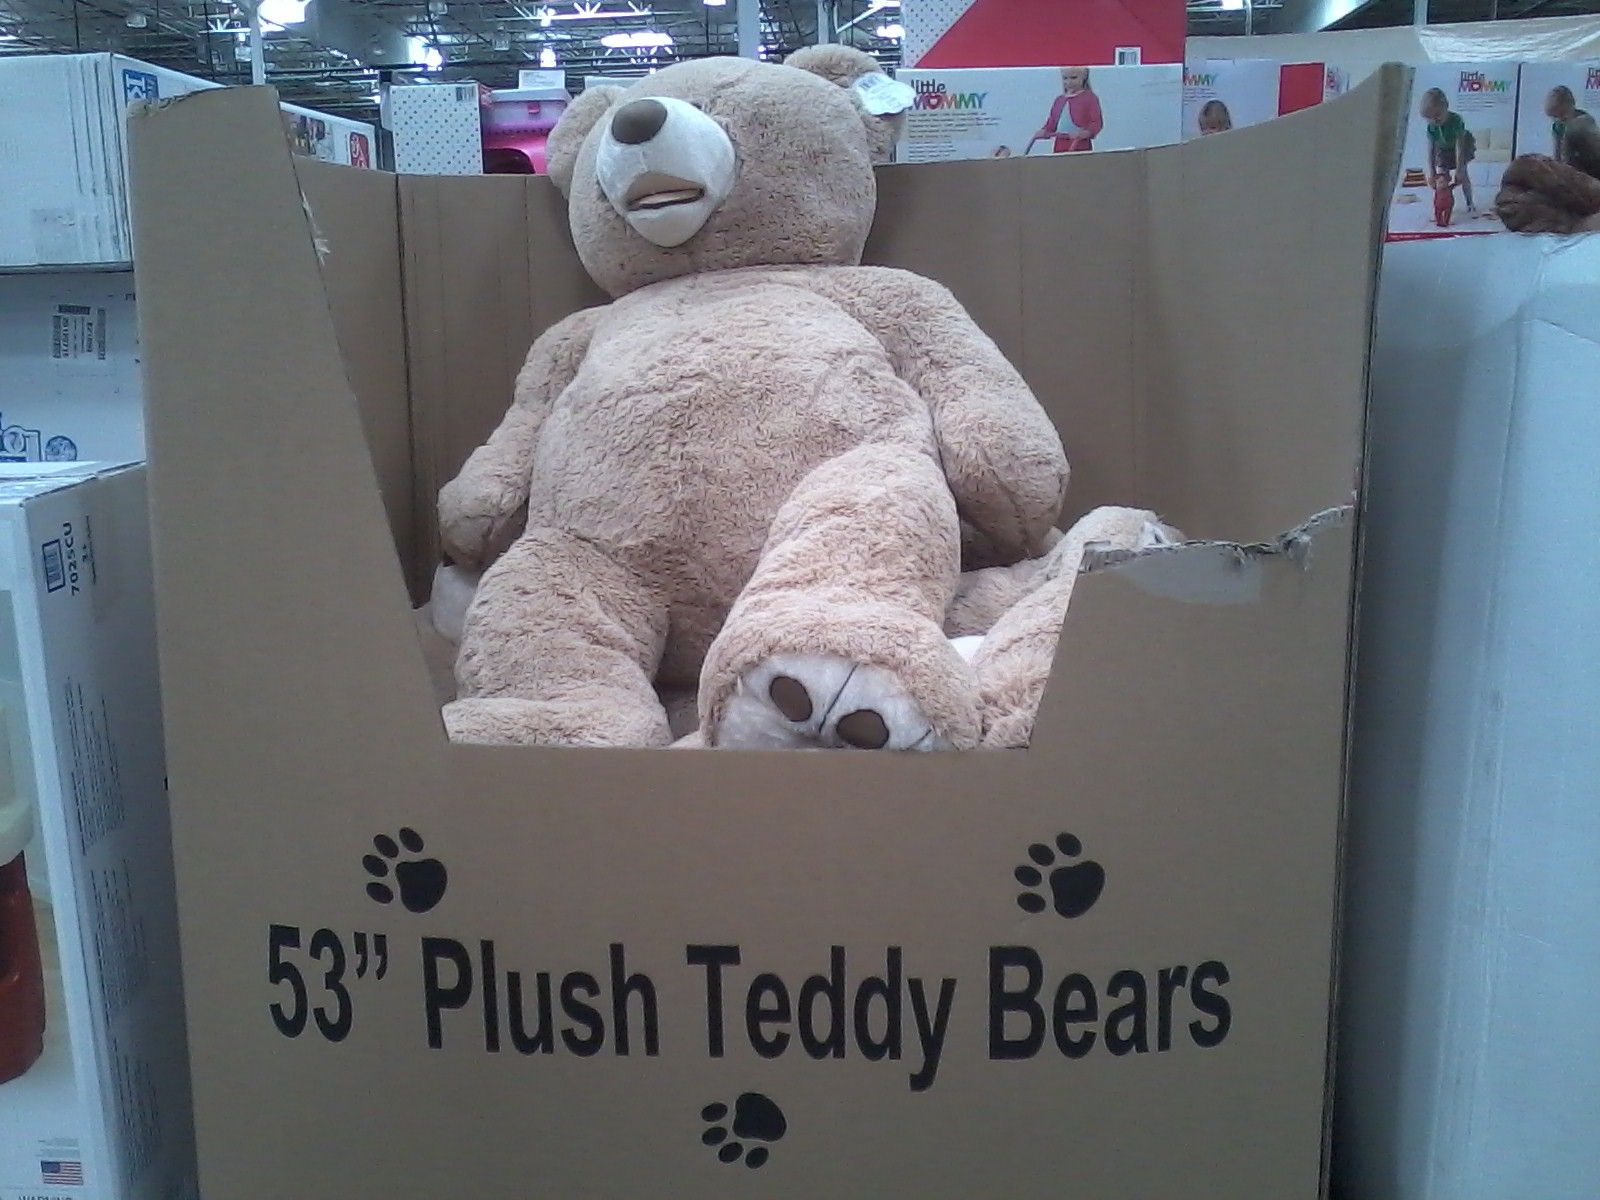 Giant 53 inch teddy bears at Costco I want one